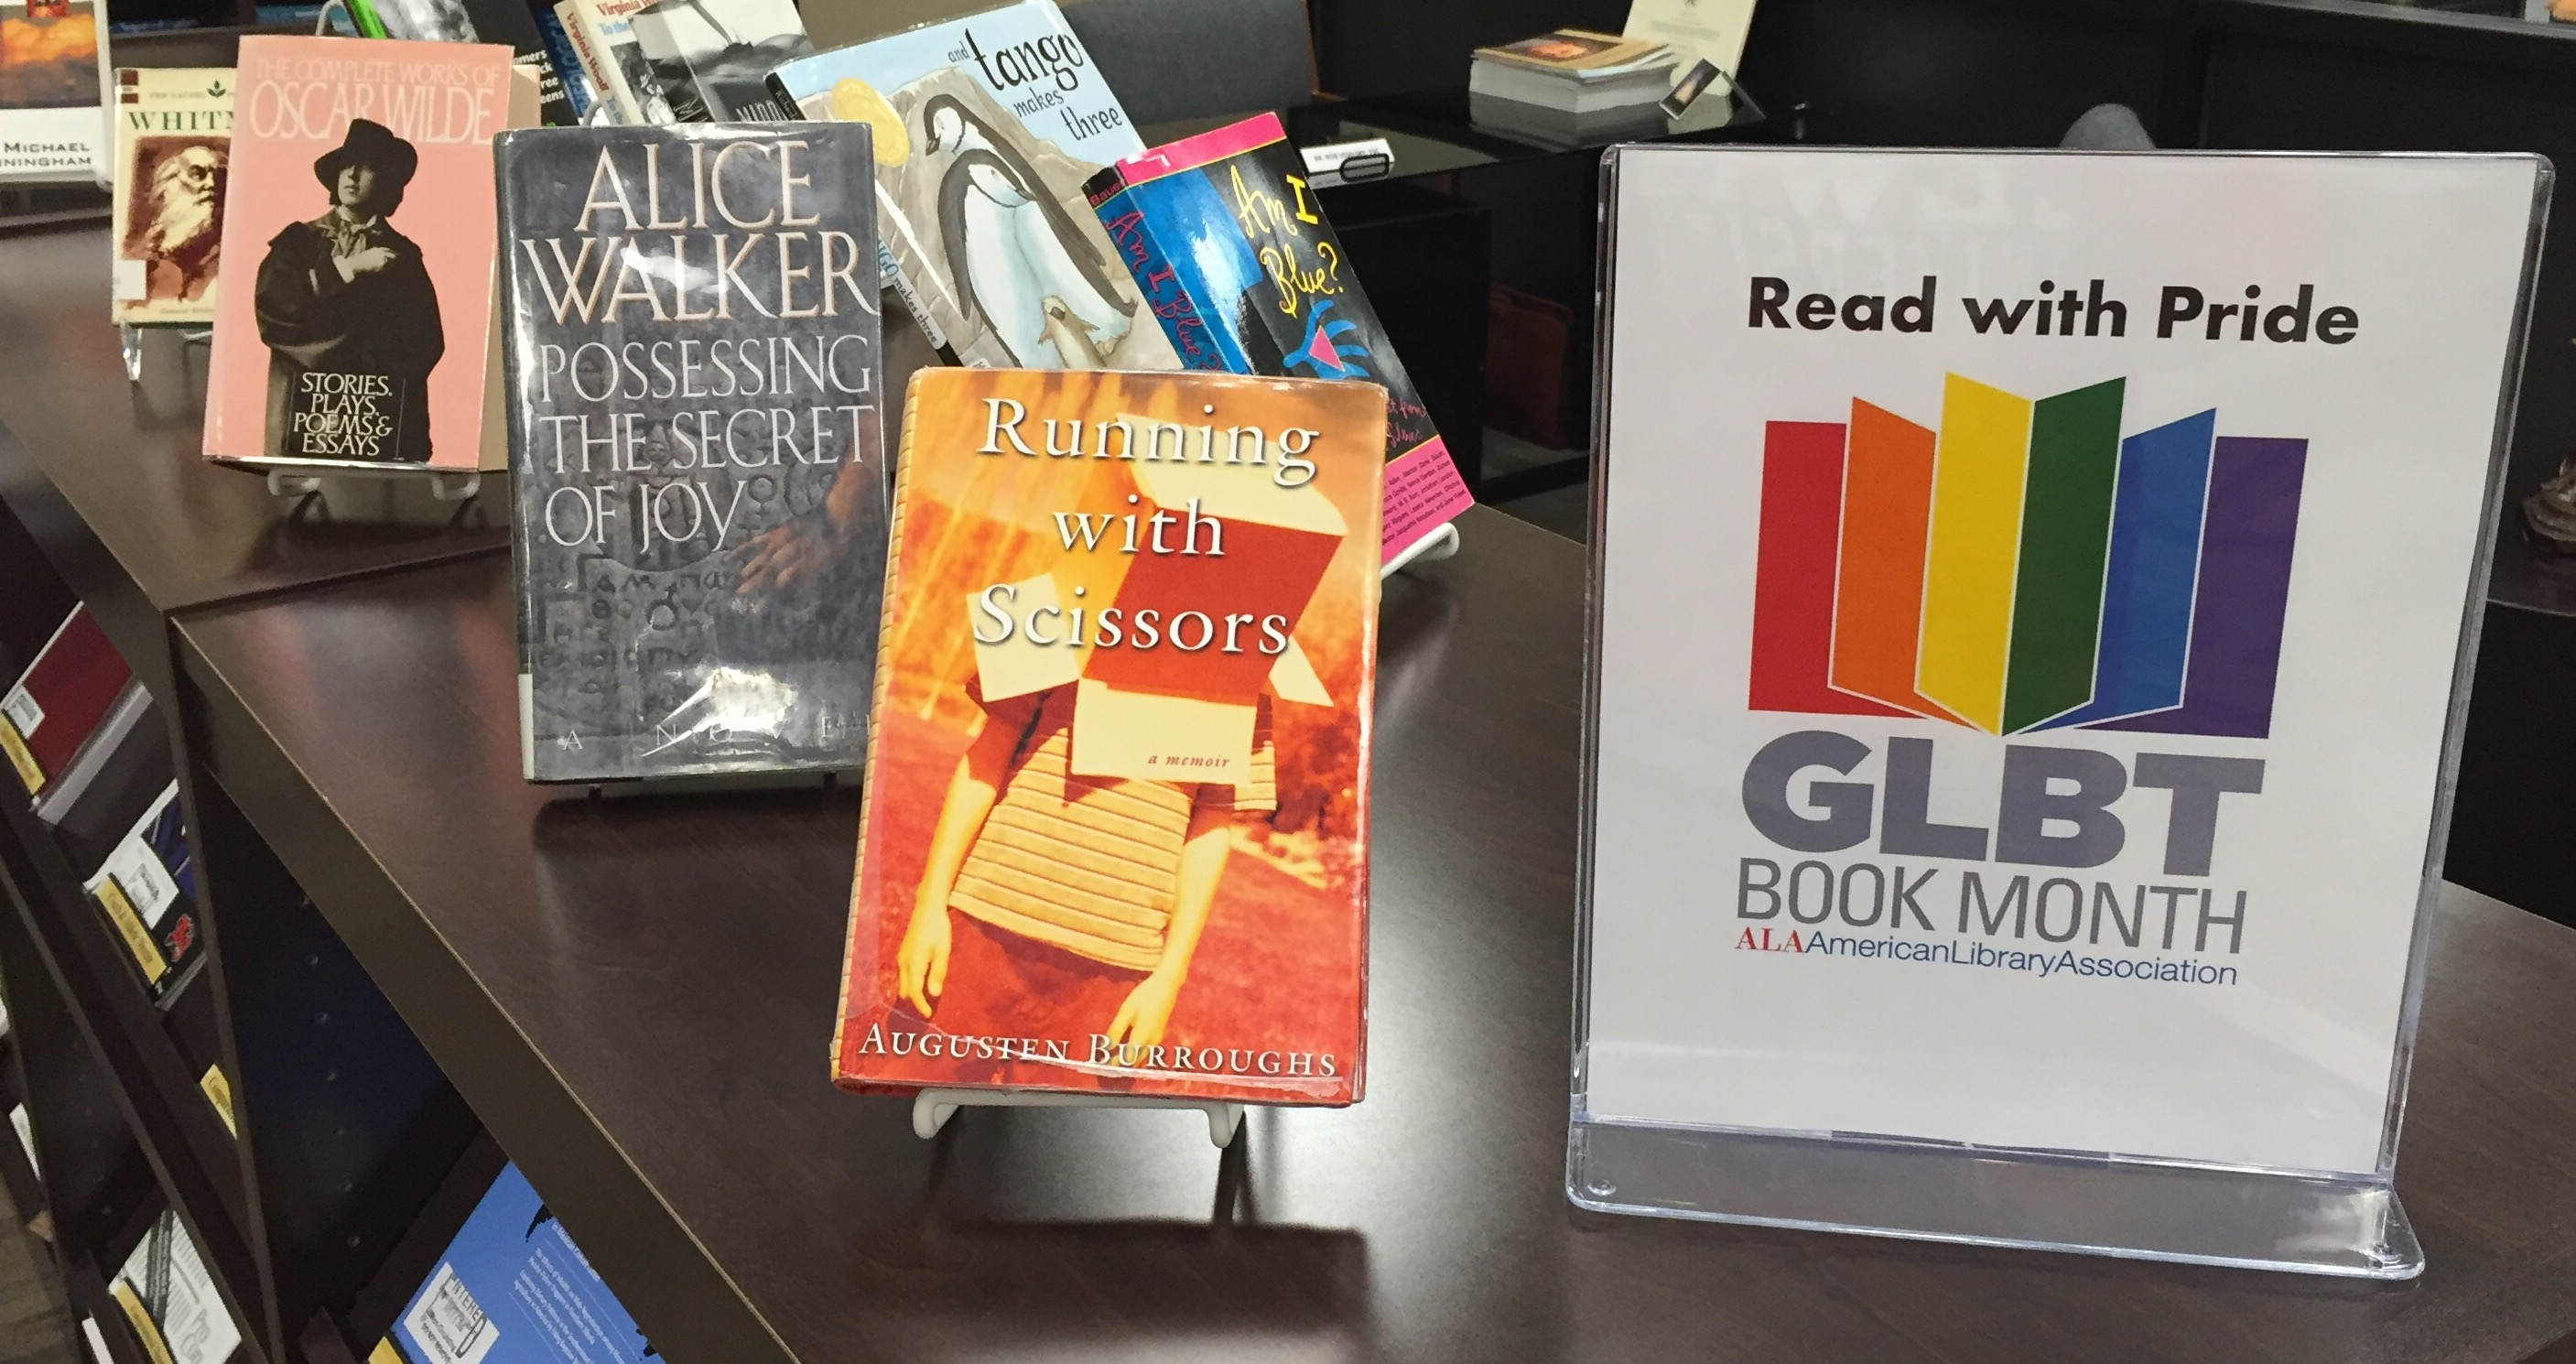 GLBT book display 1